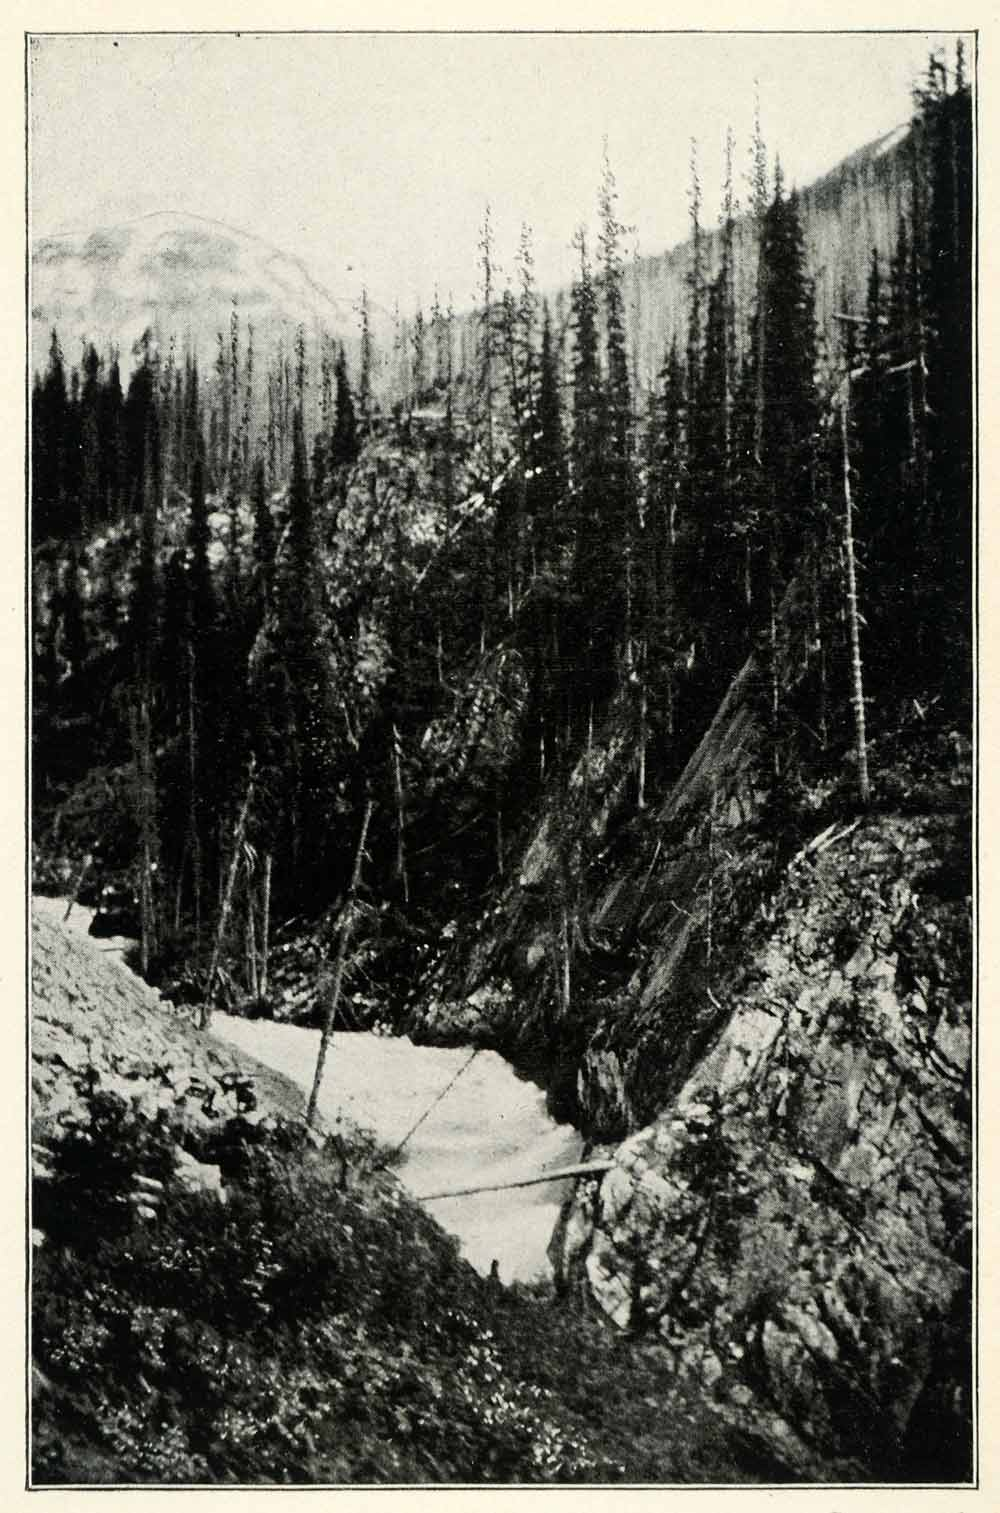 1901 Print Kicking Horse Pass Yoho National Park Canada River Nature XGU5